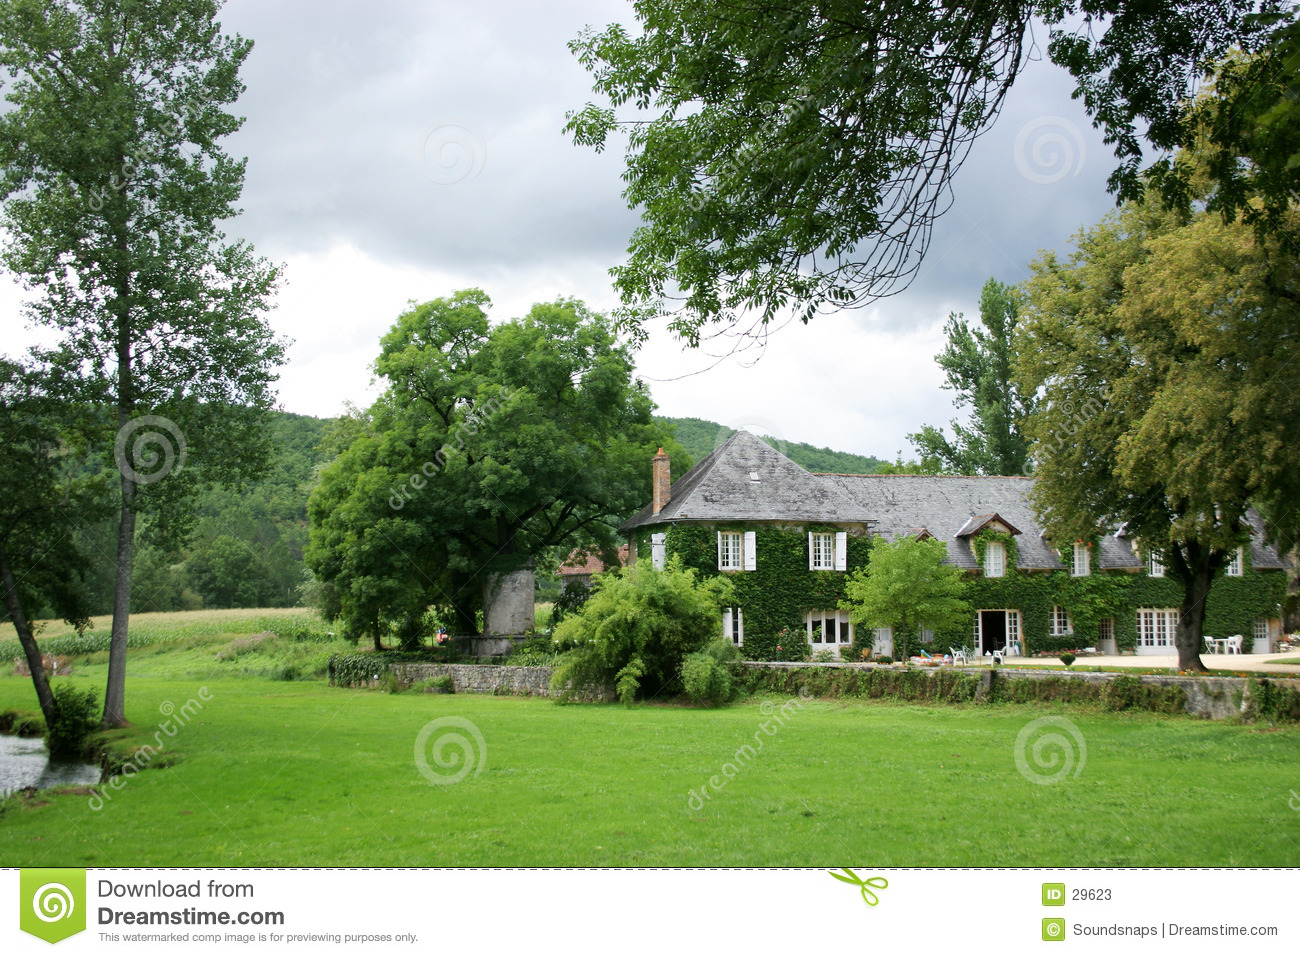 House in country garden behind trees stock image image House garden pics